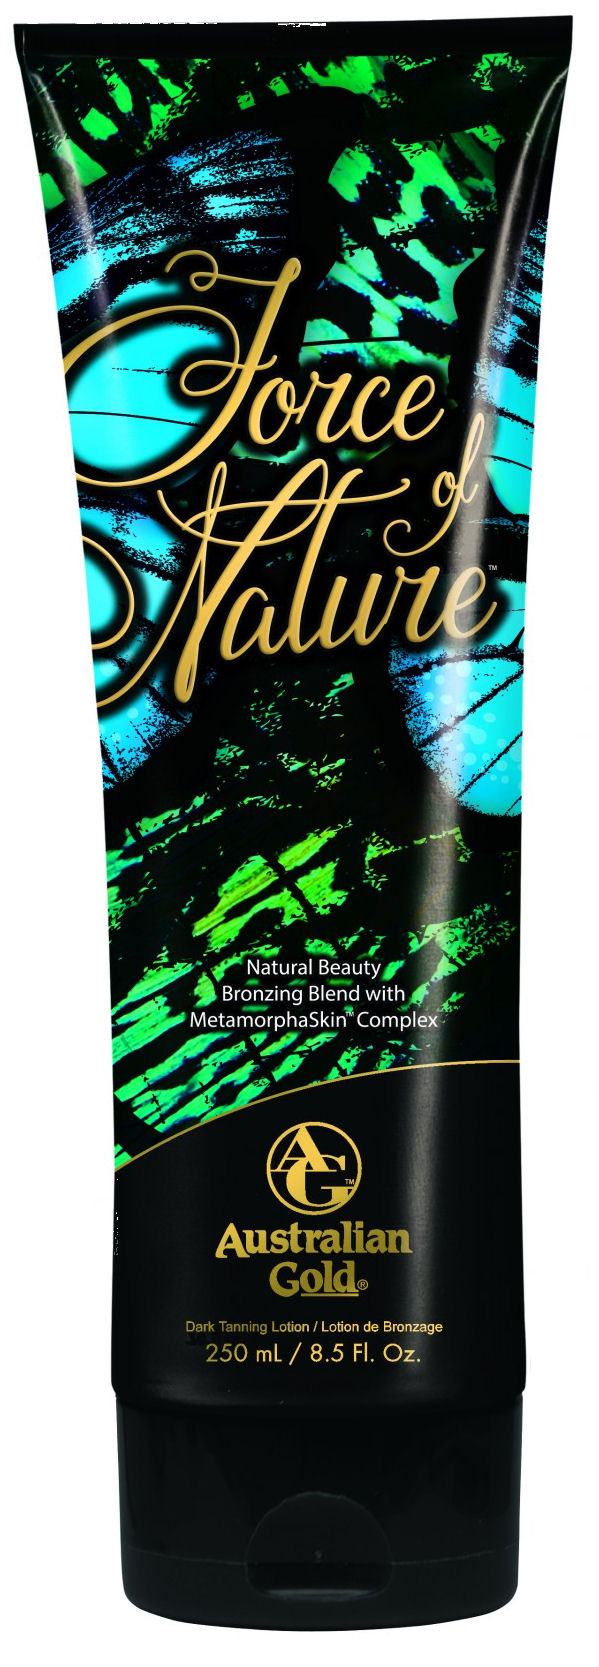 Force of Nature™ Natural Beauty Bronzing Blend